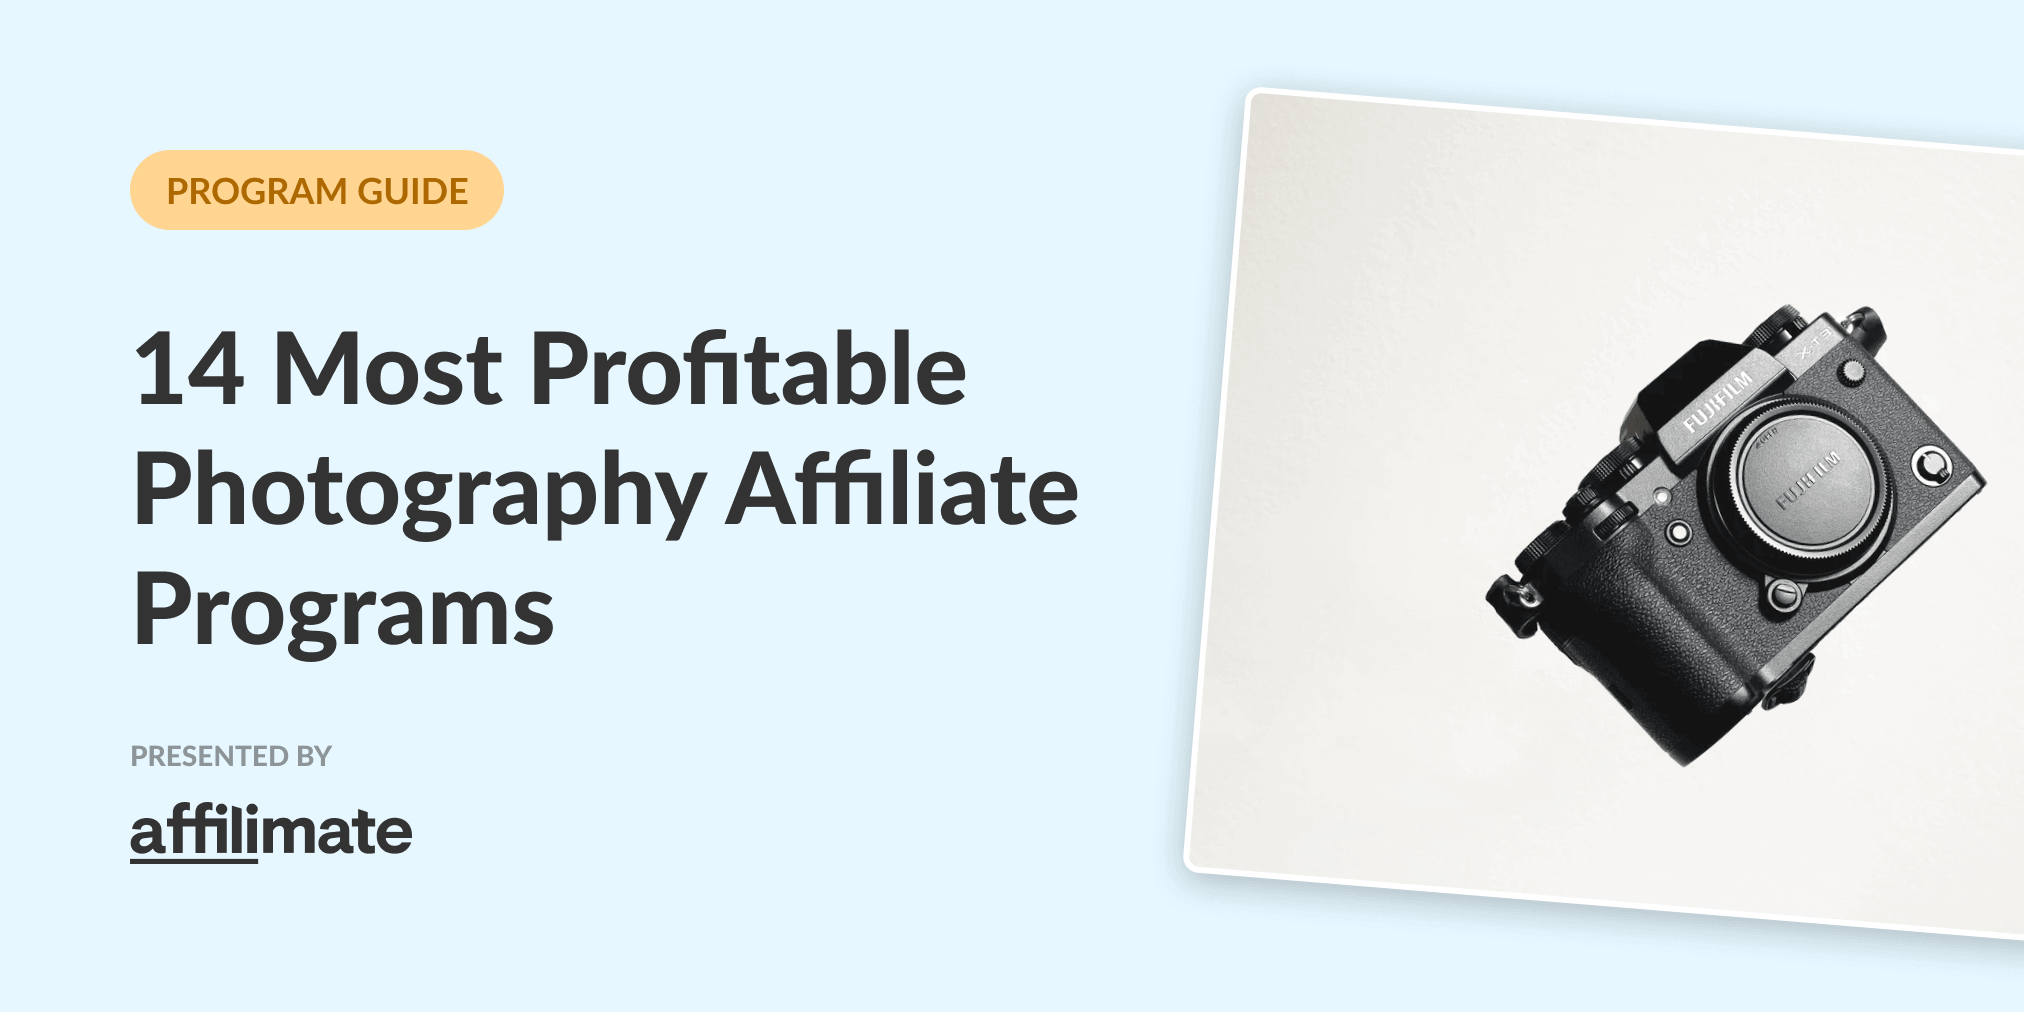 14 Best Photography Affiliate Programs in 2021 (Based on Data)